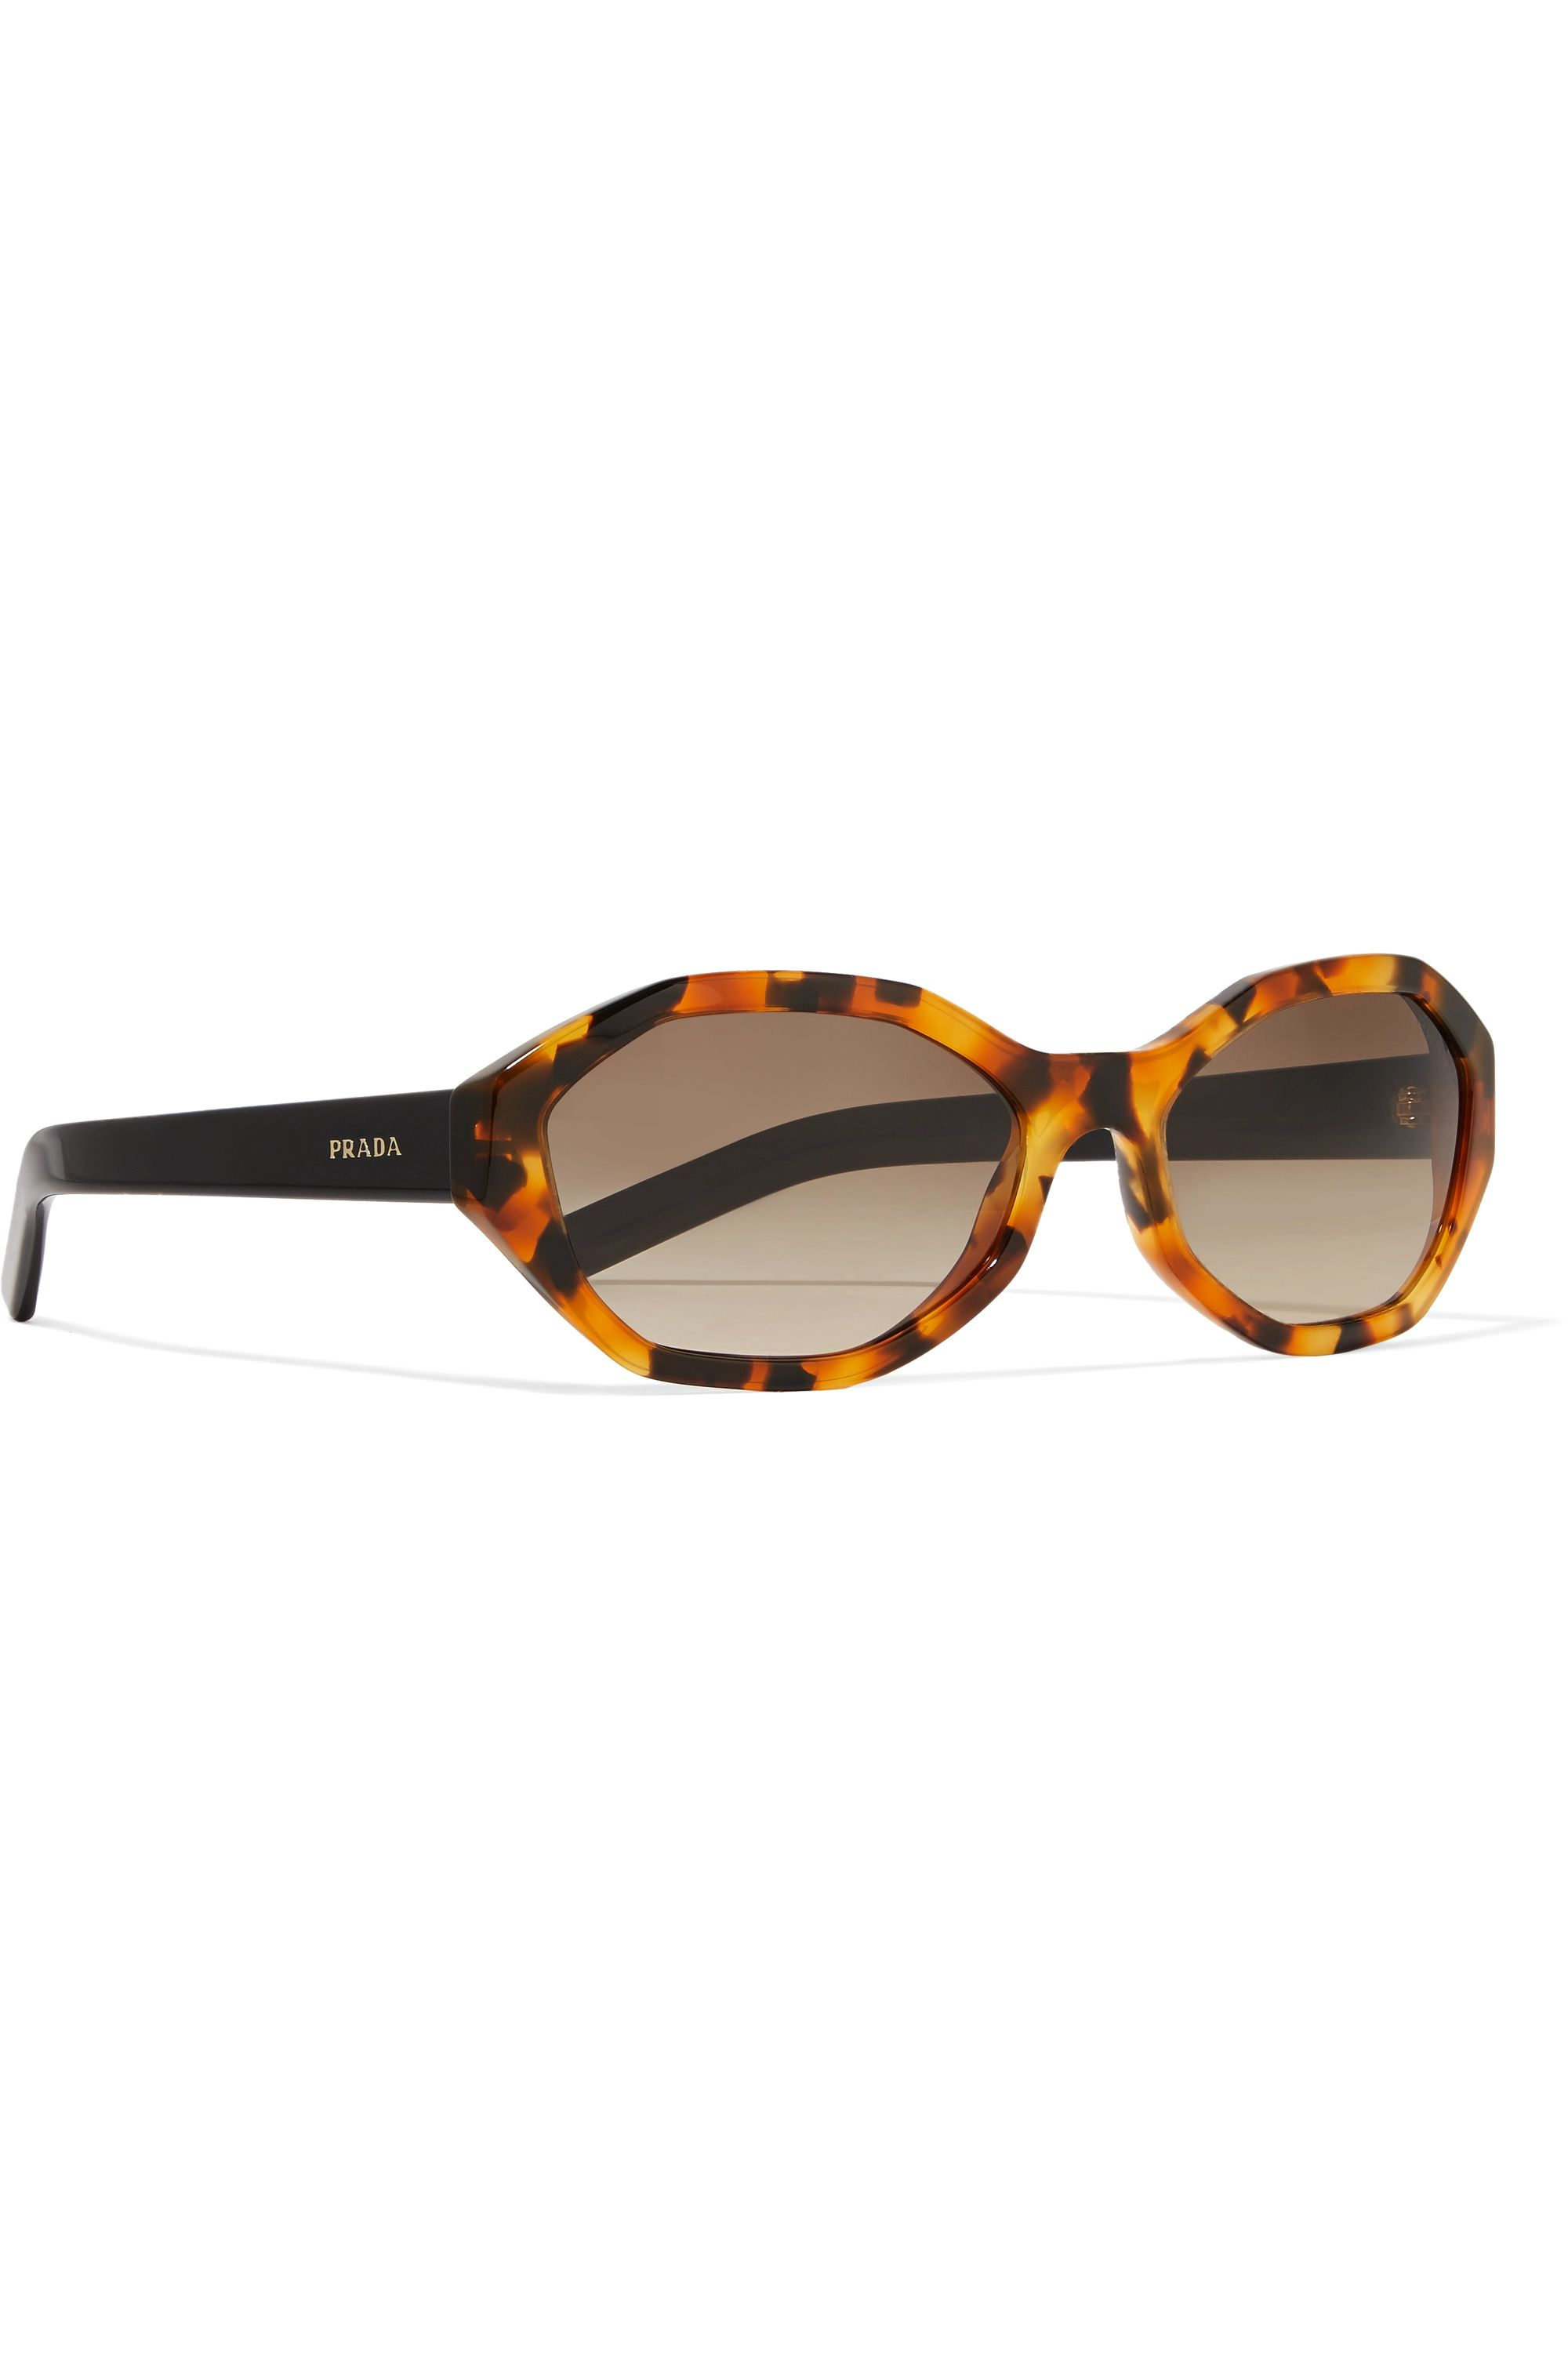 Prada Eyewear Hexagon-frame tortoiseshell acetate sunglasses